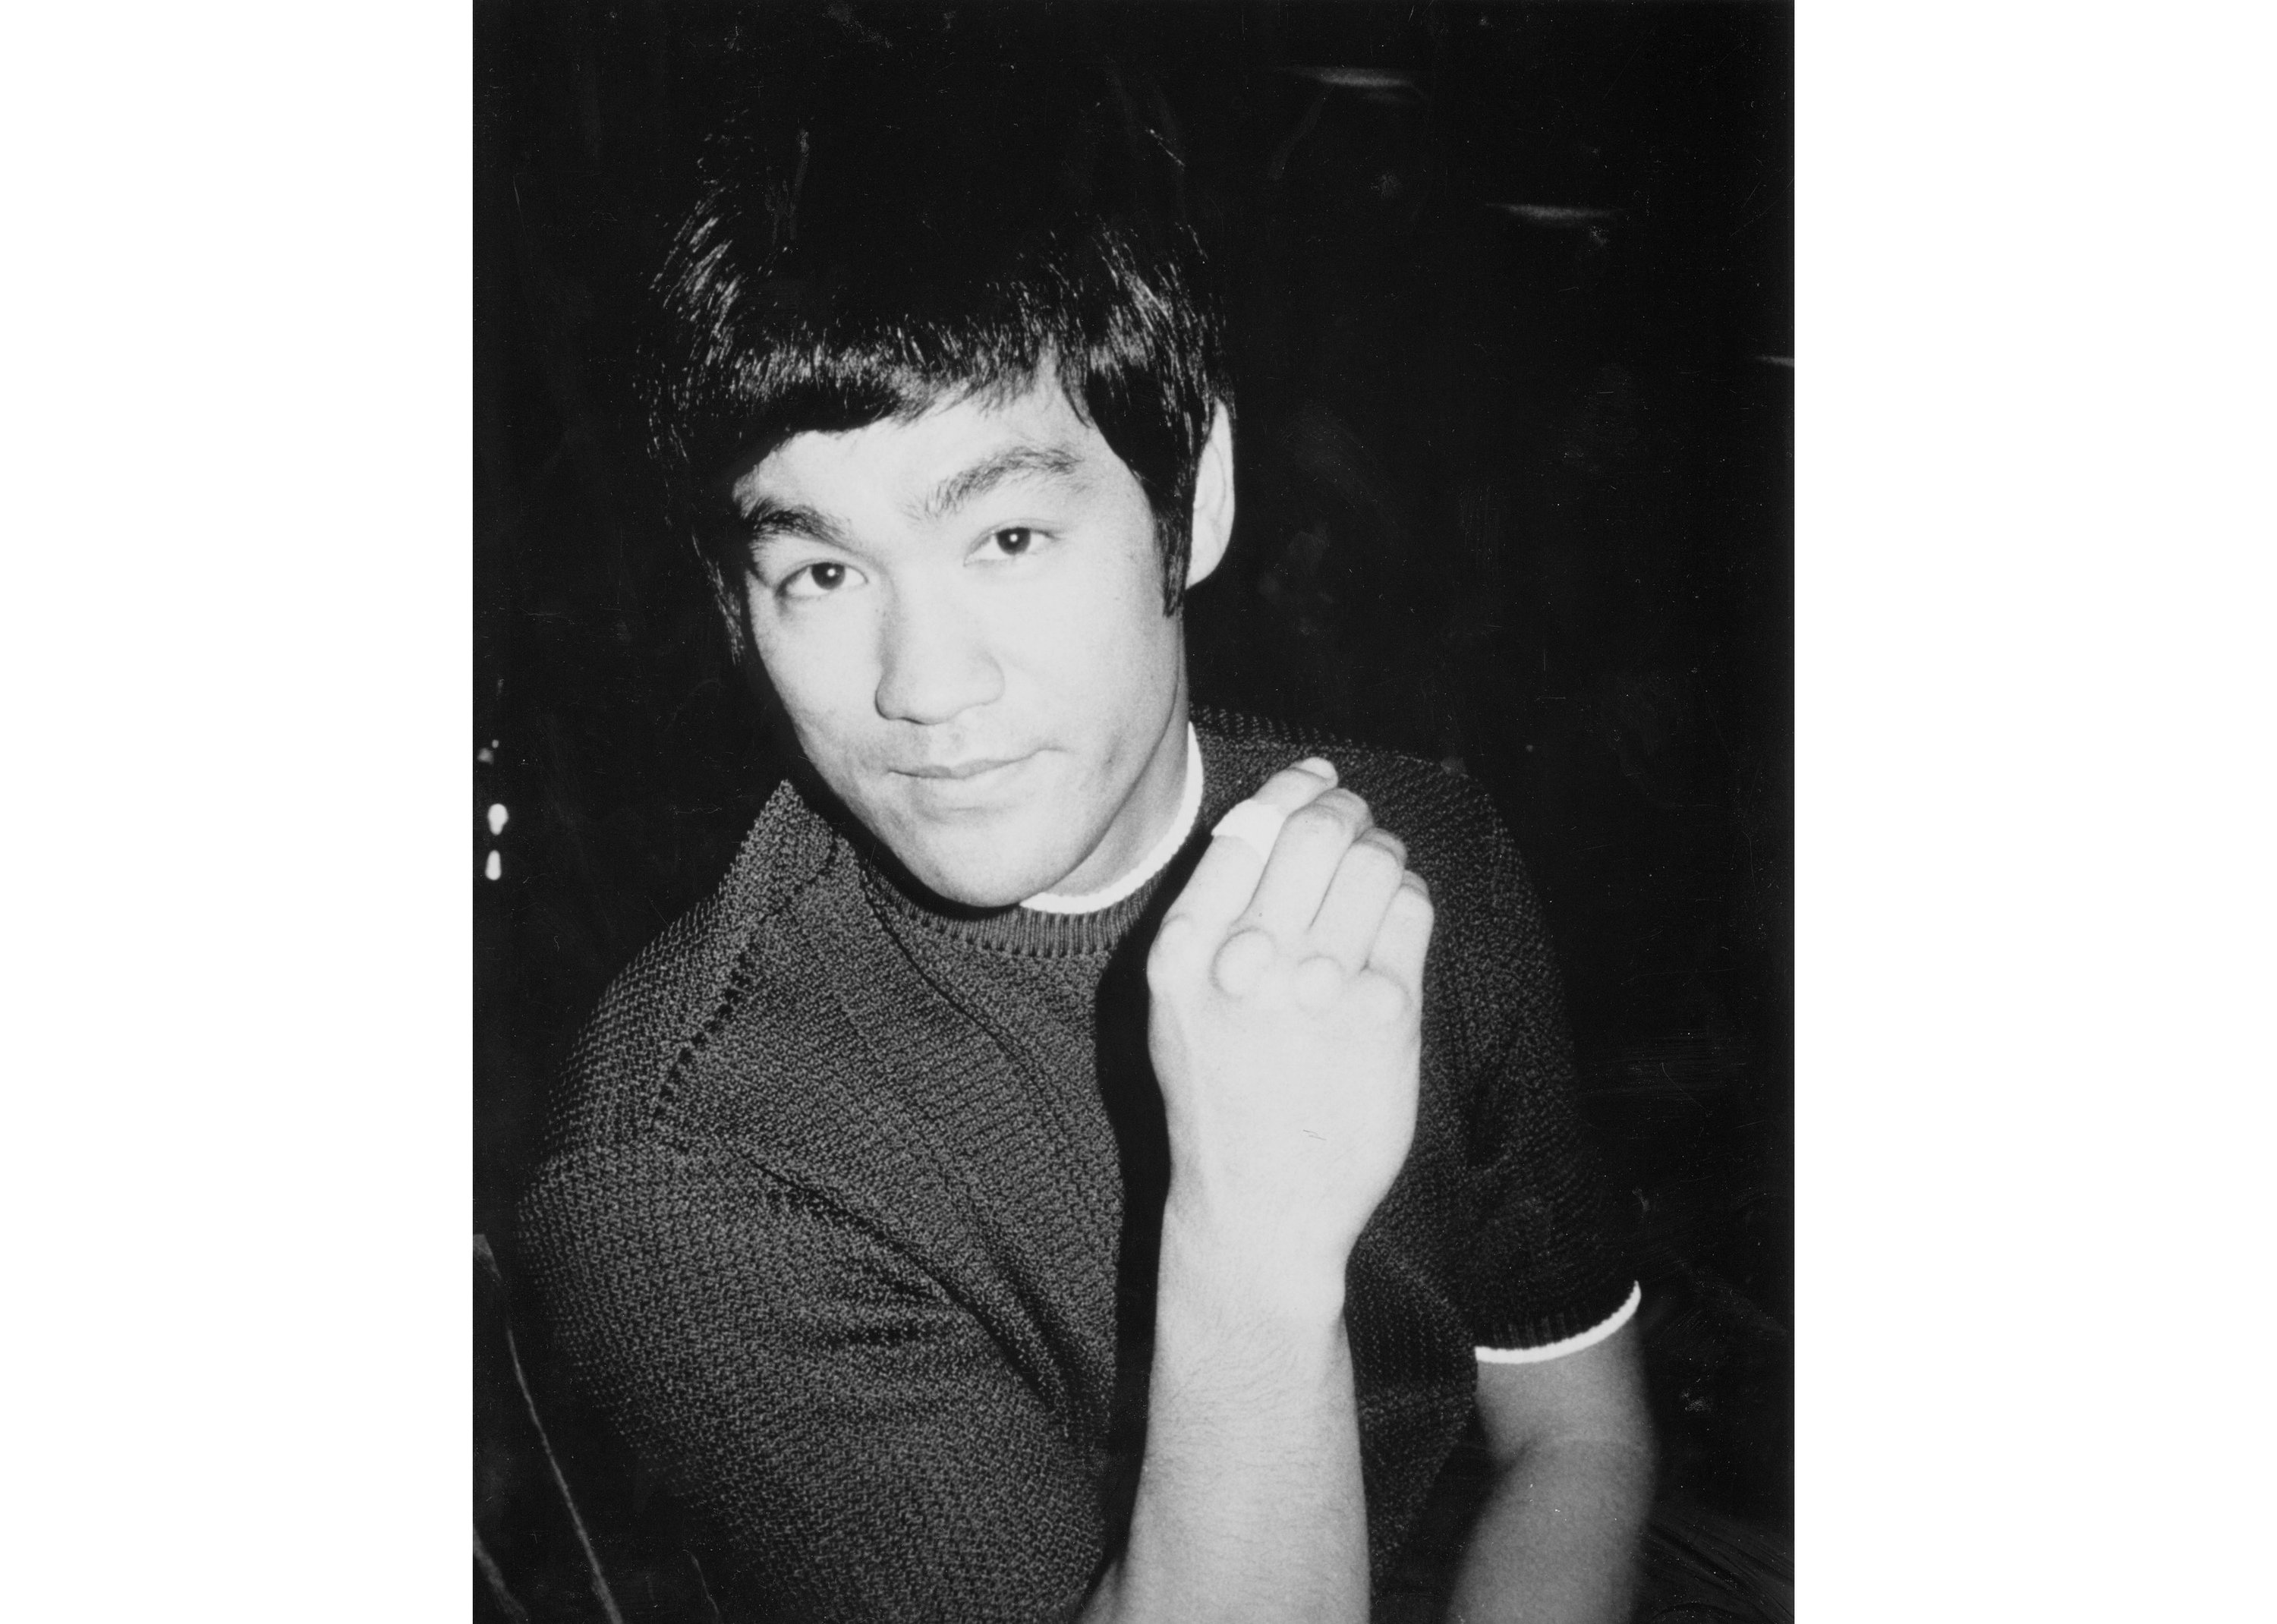 New this week: Apollo benefit, docs on Bruce Lee, spelling